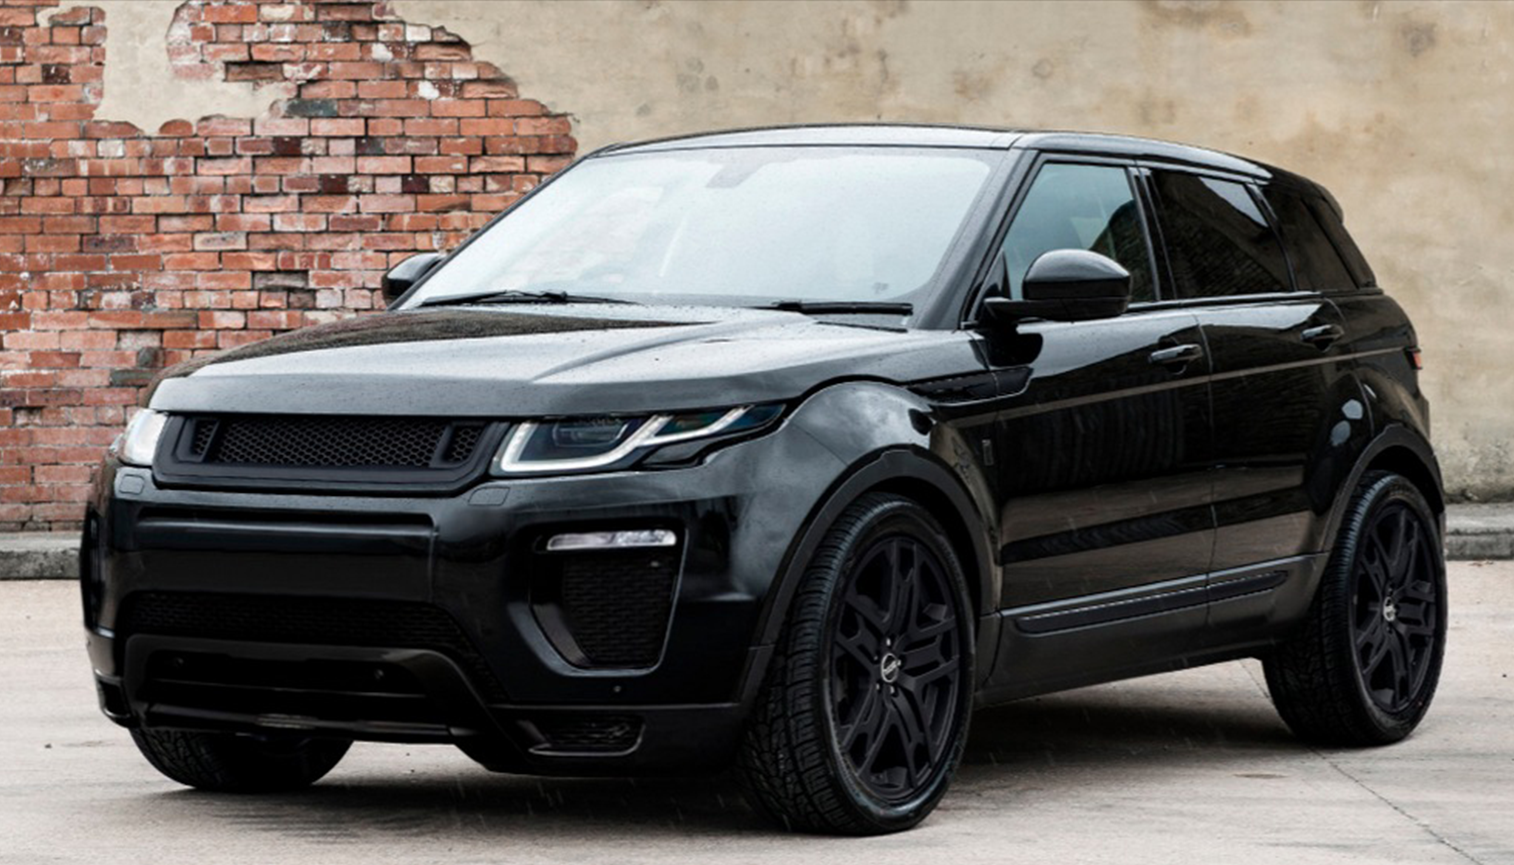 2020 Range Rover Evoque Xl Concept and Review